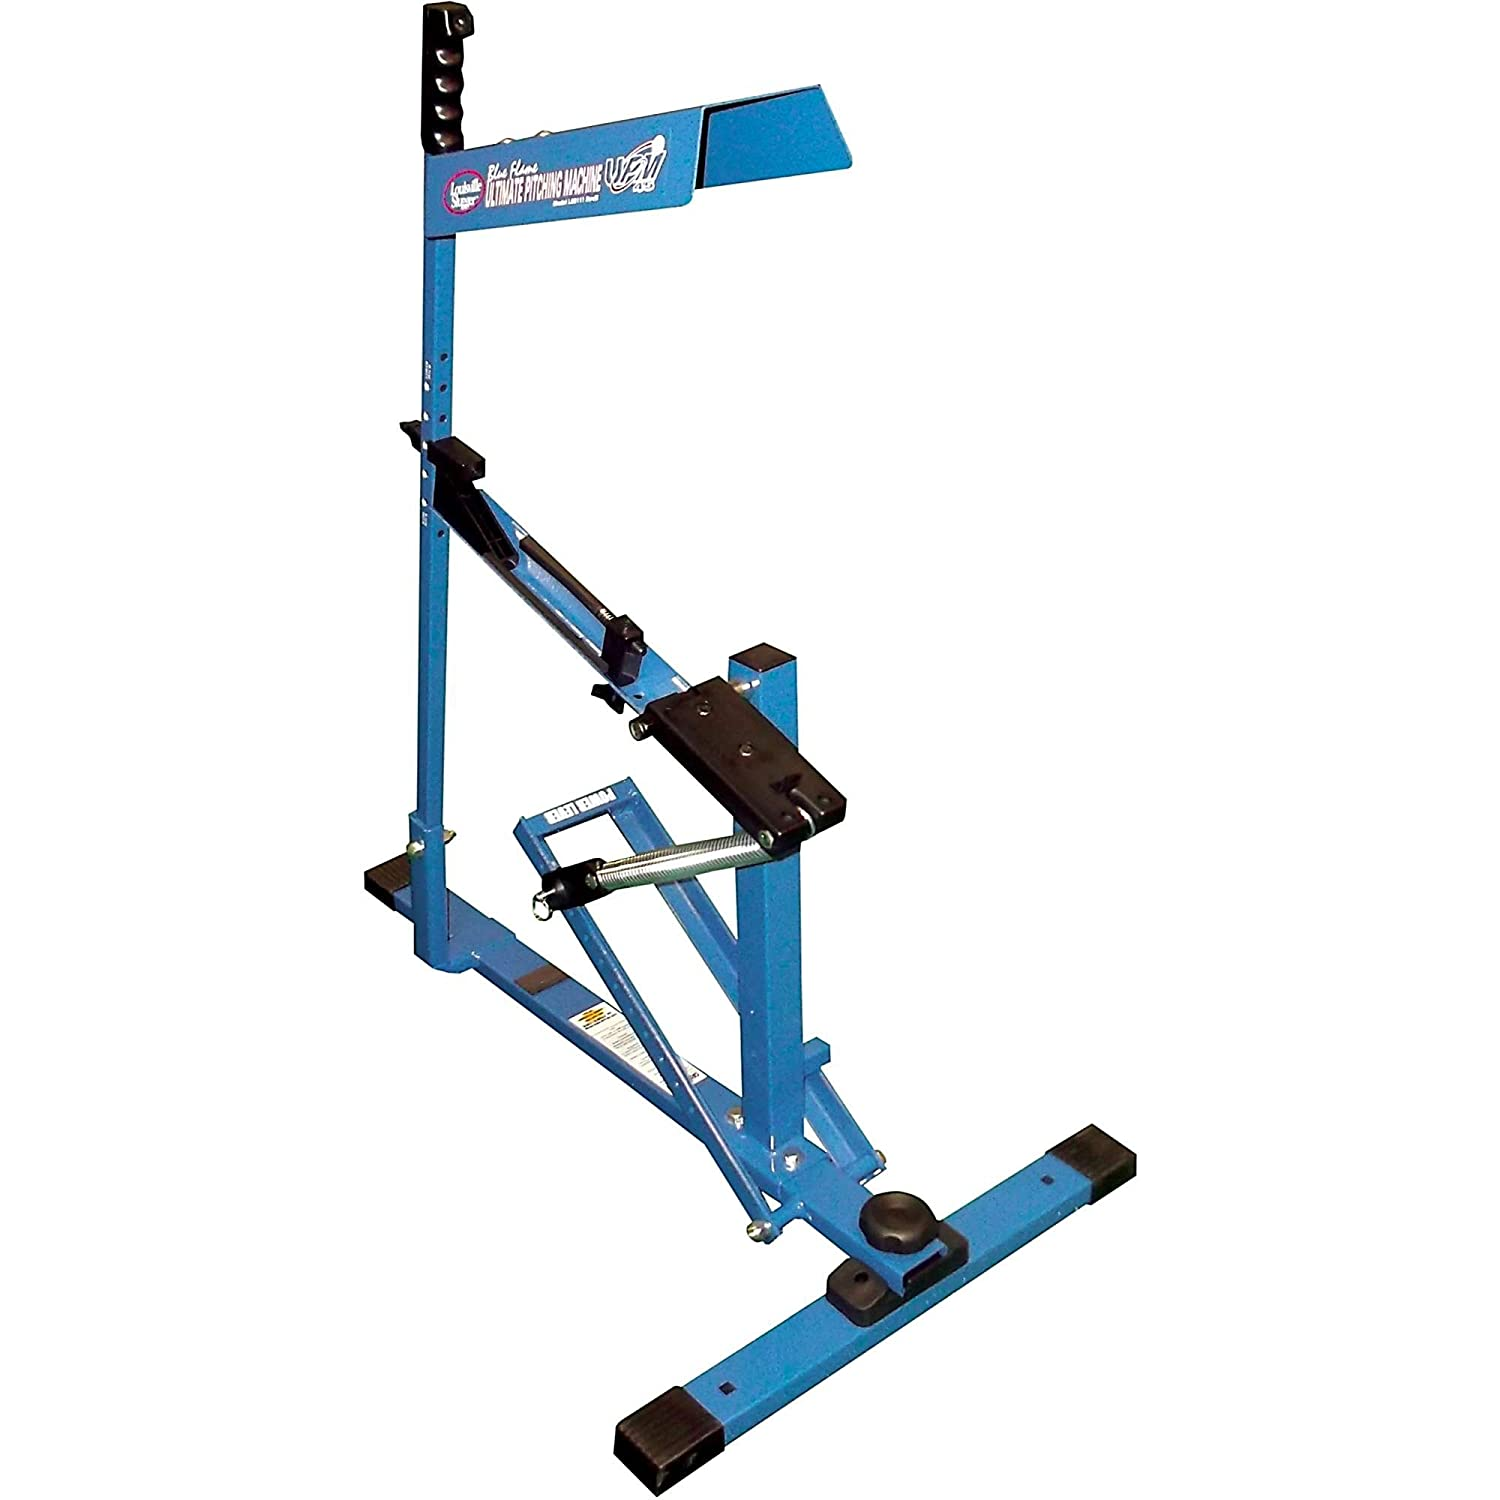 Louisville Slugger – The Blue Flame Ultimate Pitching Machine